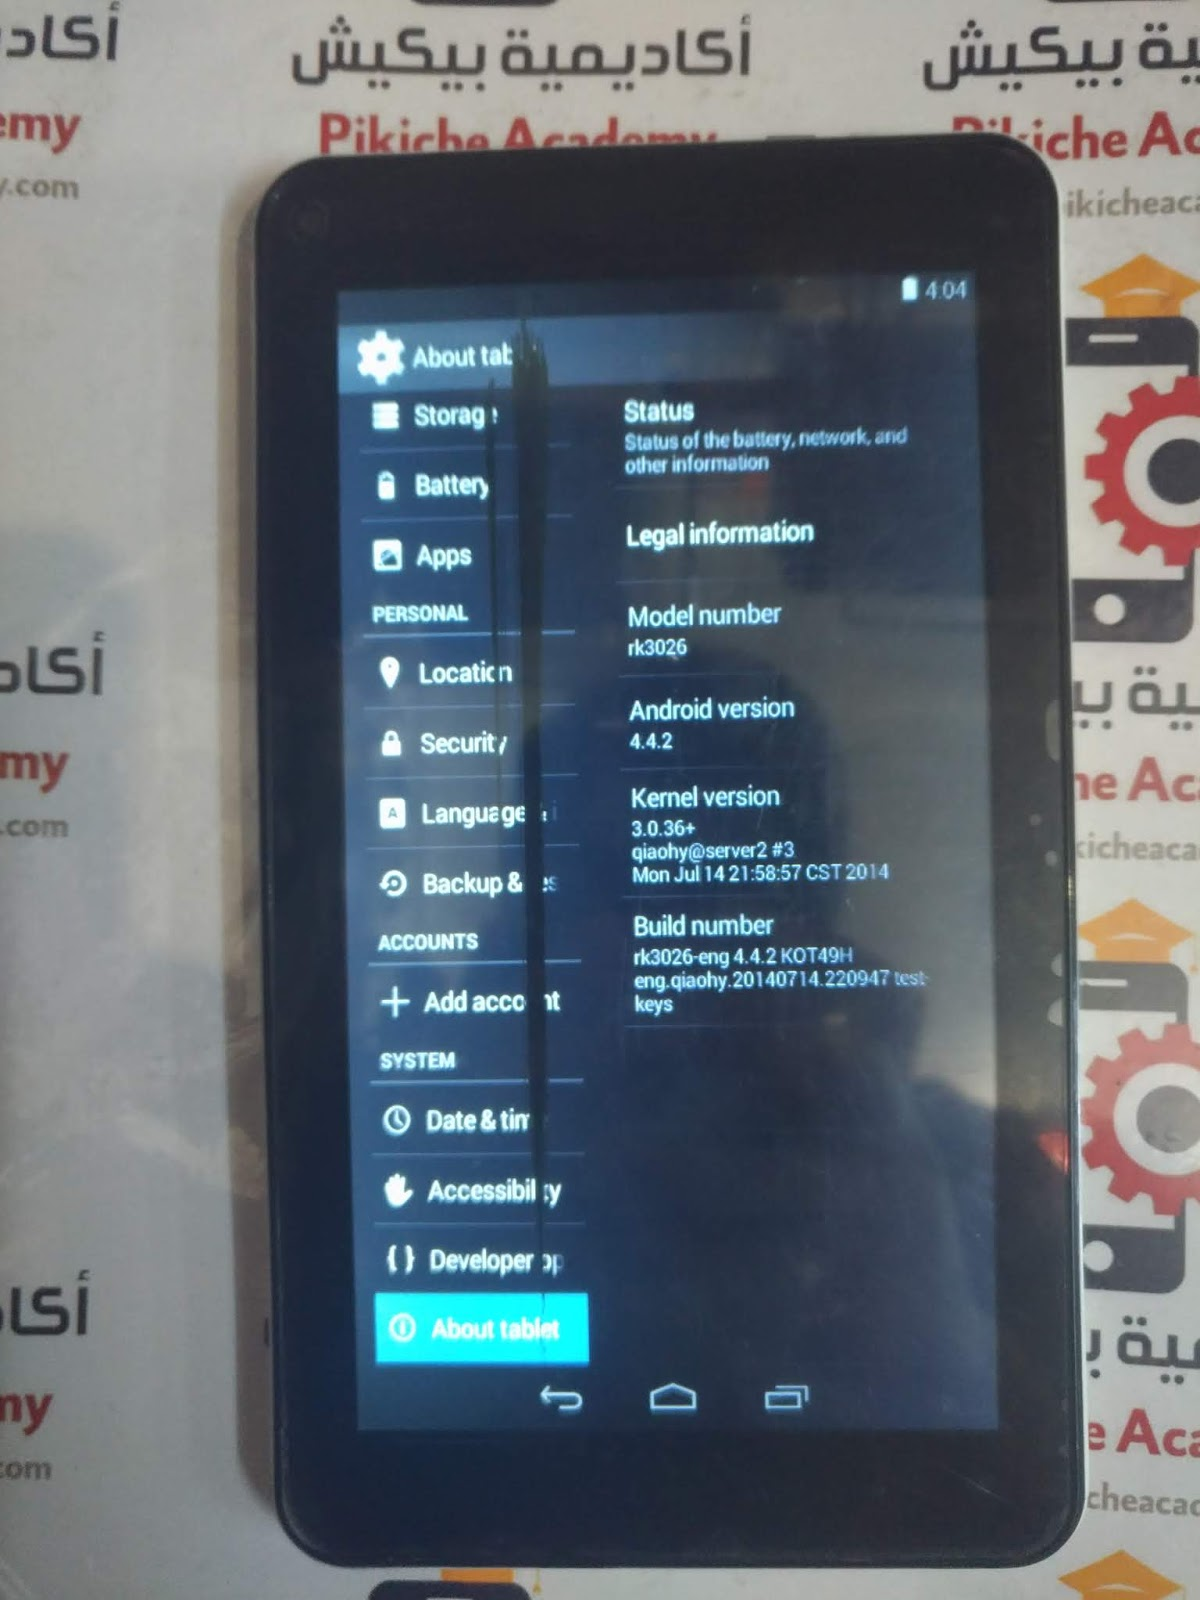 RockChip ] [ XCESS ] C86S 8G 512M JR - Firmware Tested